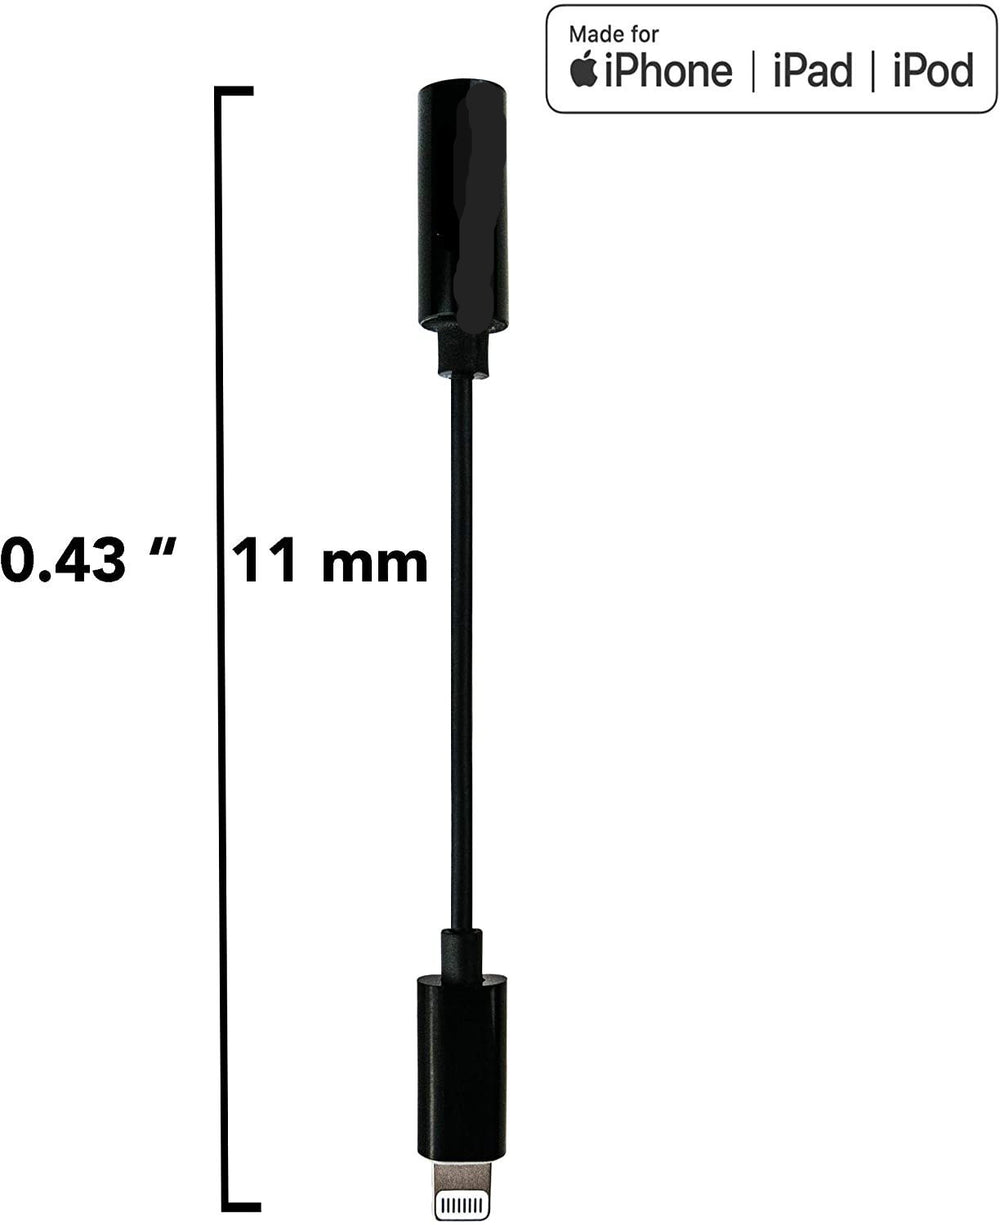 iPhone / iPad / iPod Mic Disabler (with headphone jack)